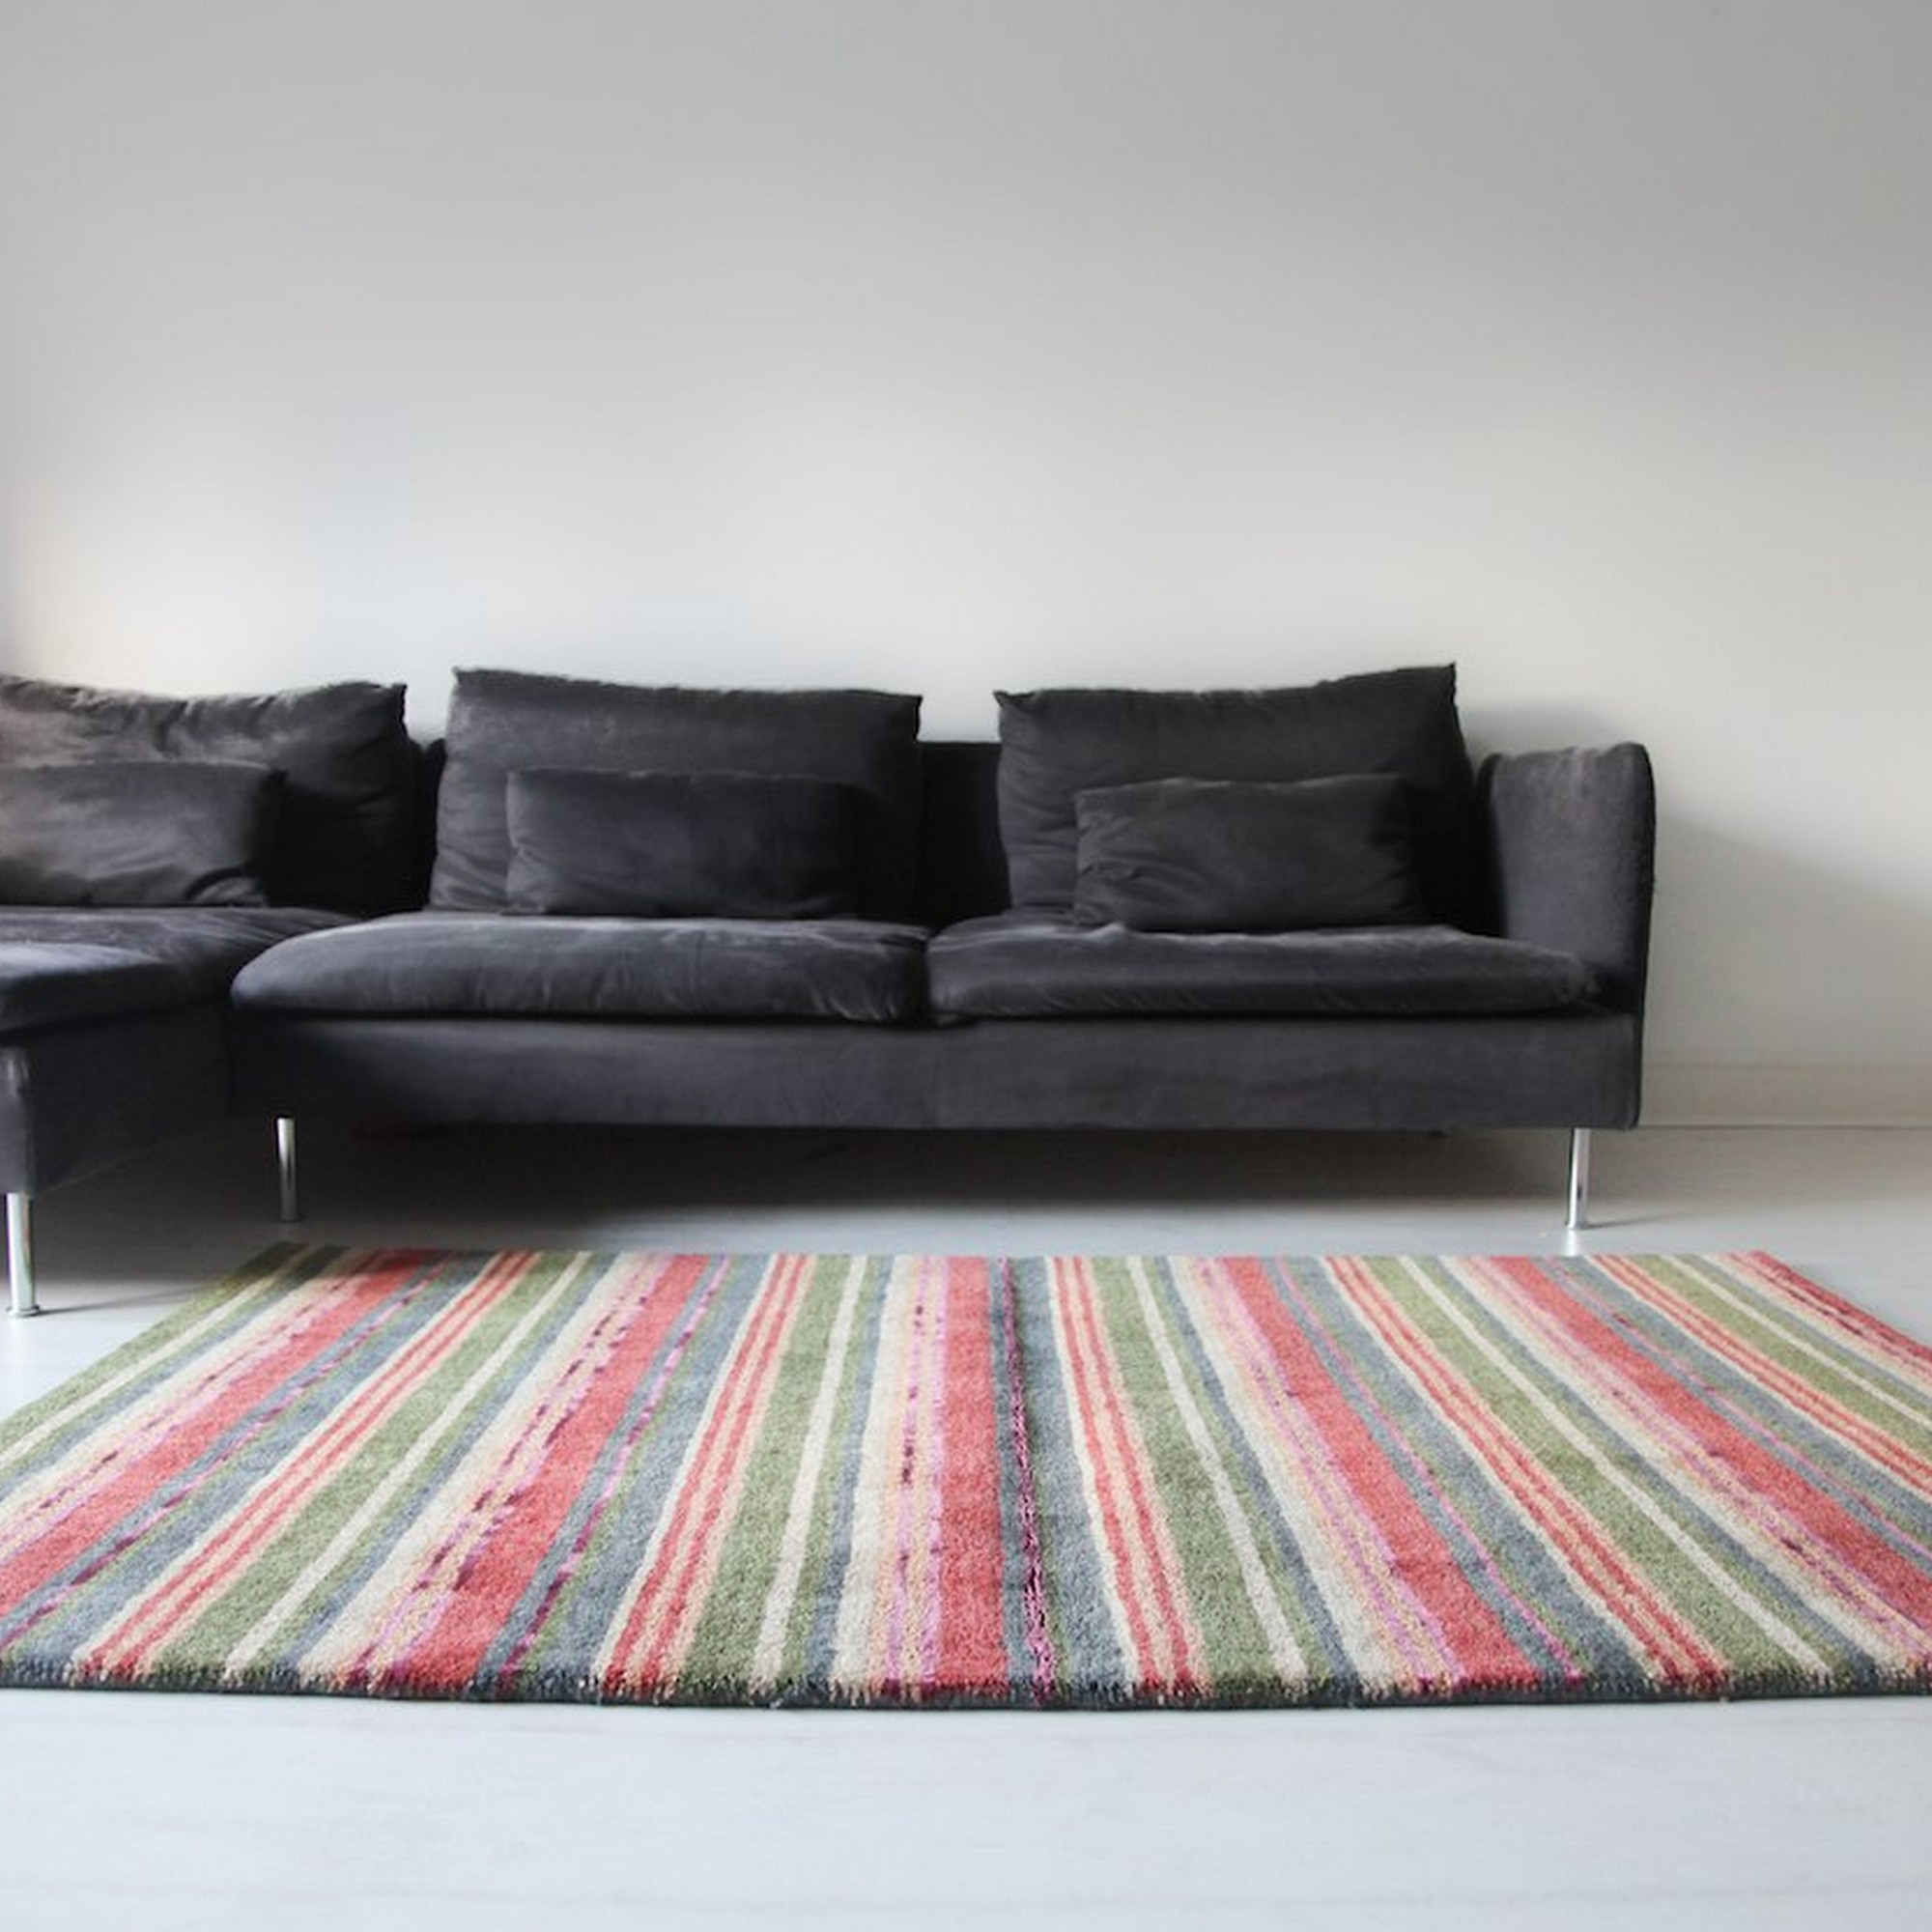 Supreme Handloom Multistripe Rugs in Spangle